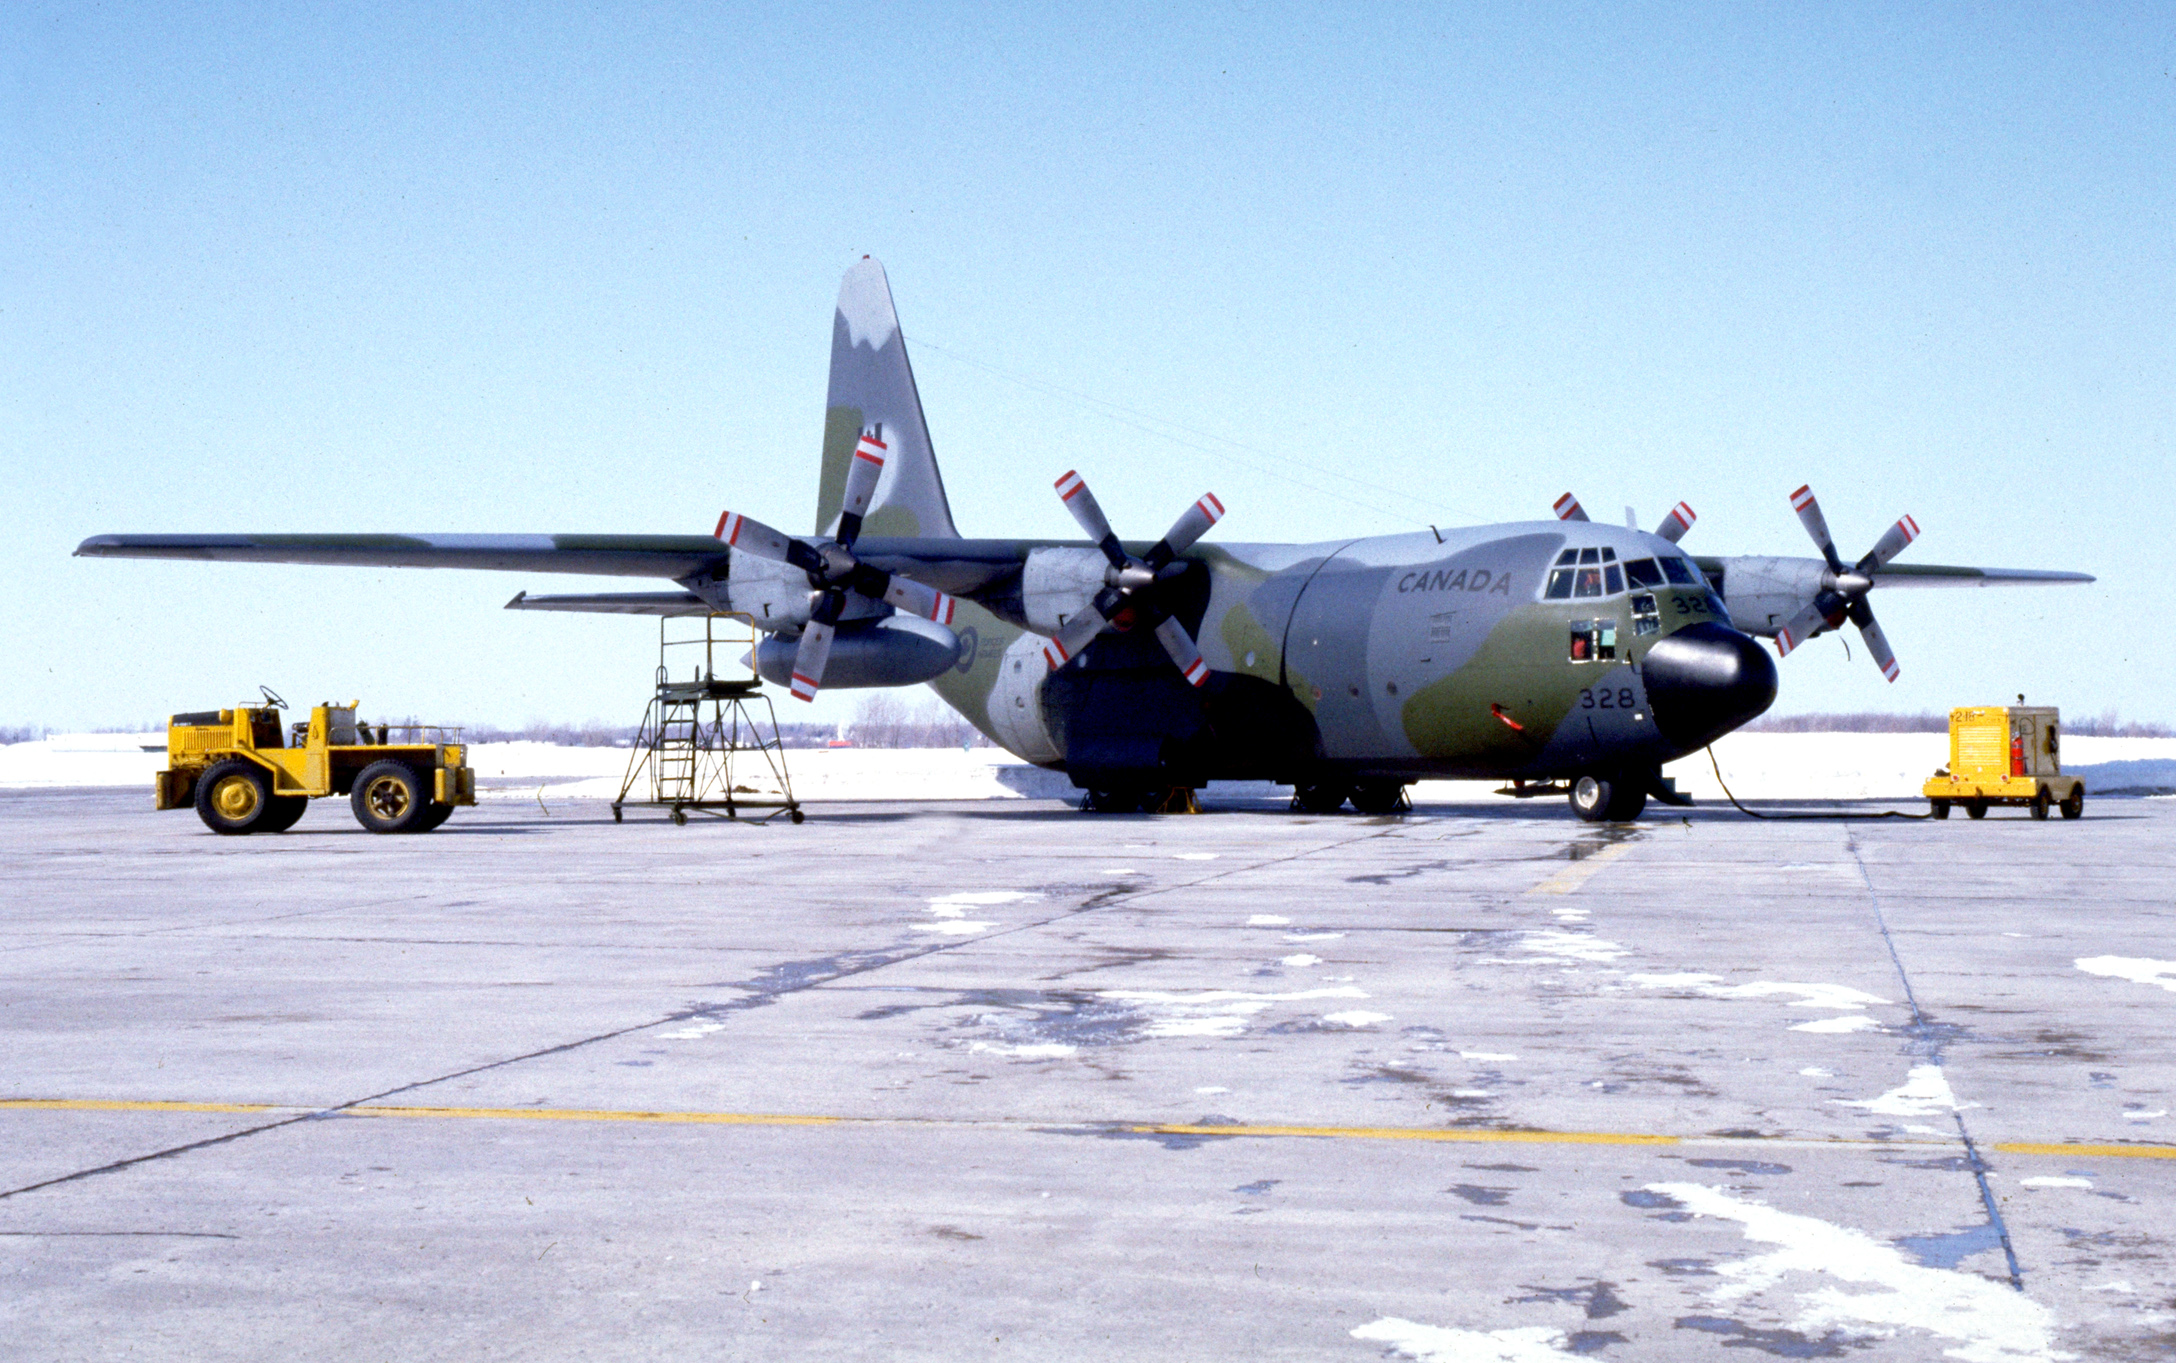 Royal Canadian Air Force CC-130E No. 328 sits on the tarmac at 8 Wing Trenton, Ontario, on December 2006. Retired in October 2011, No. 328 is slated to go to the Greenwood Military Aviation Museum at 14 Wing Greenwood, Nova Scotia. PHOTO: Private Frieda Van Putten